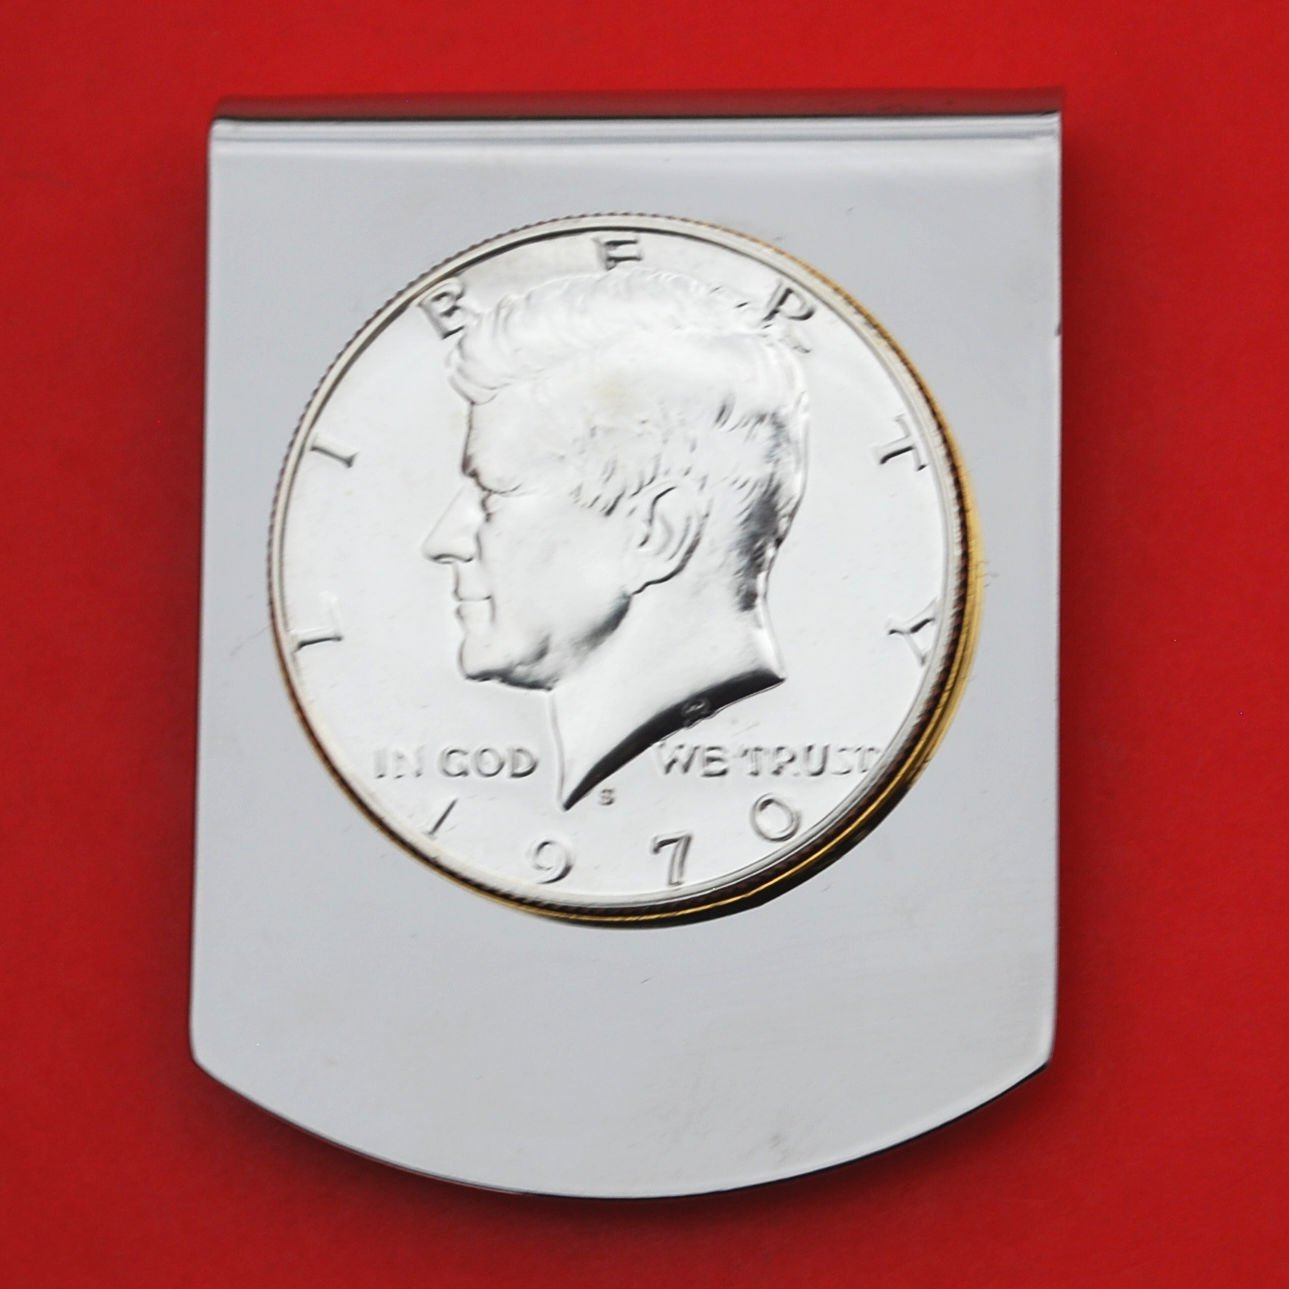 US 1970 Kennedy Half Dollar Gem BU Proof Uncirculated Coin Stainless Steel Two Tone Large Money Clip NEW - Wide Design